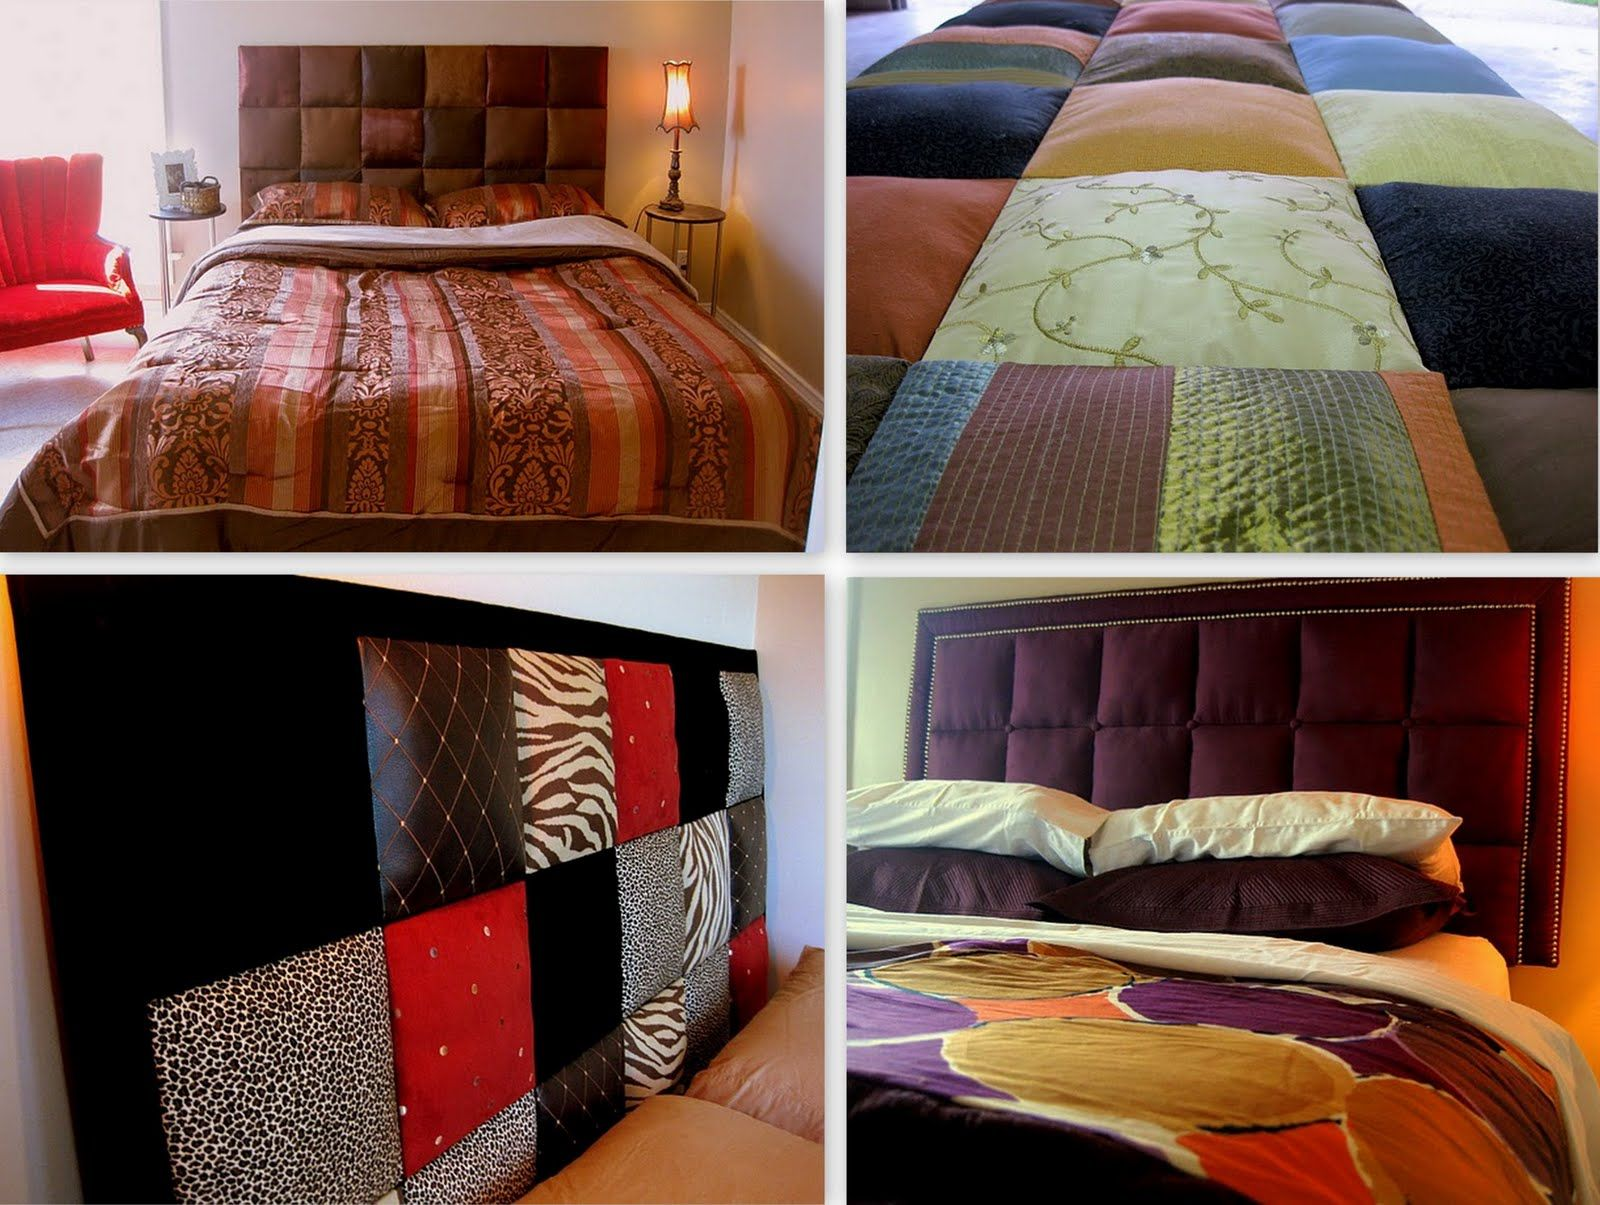 Easy upholstered tufter headboard tutorial camping rv - What to use instead of a headboard ...